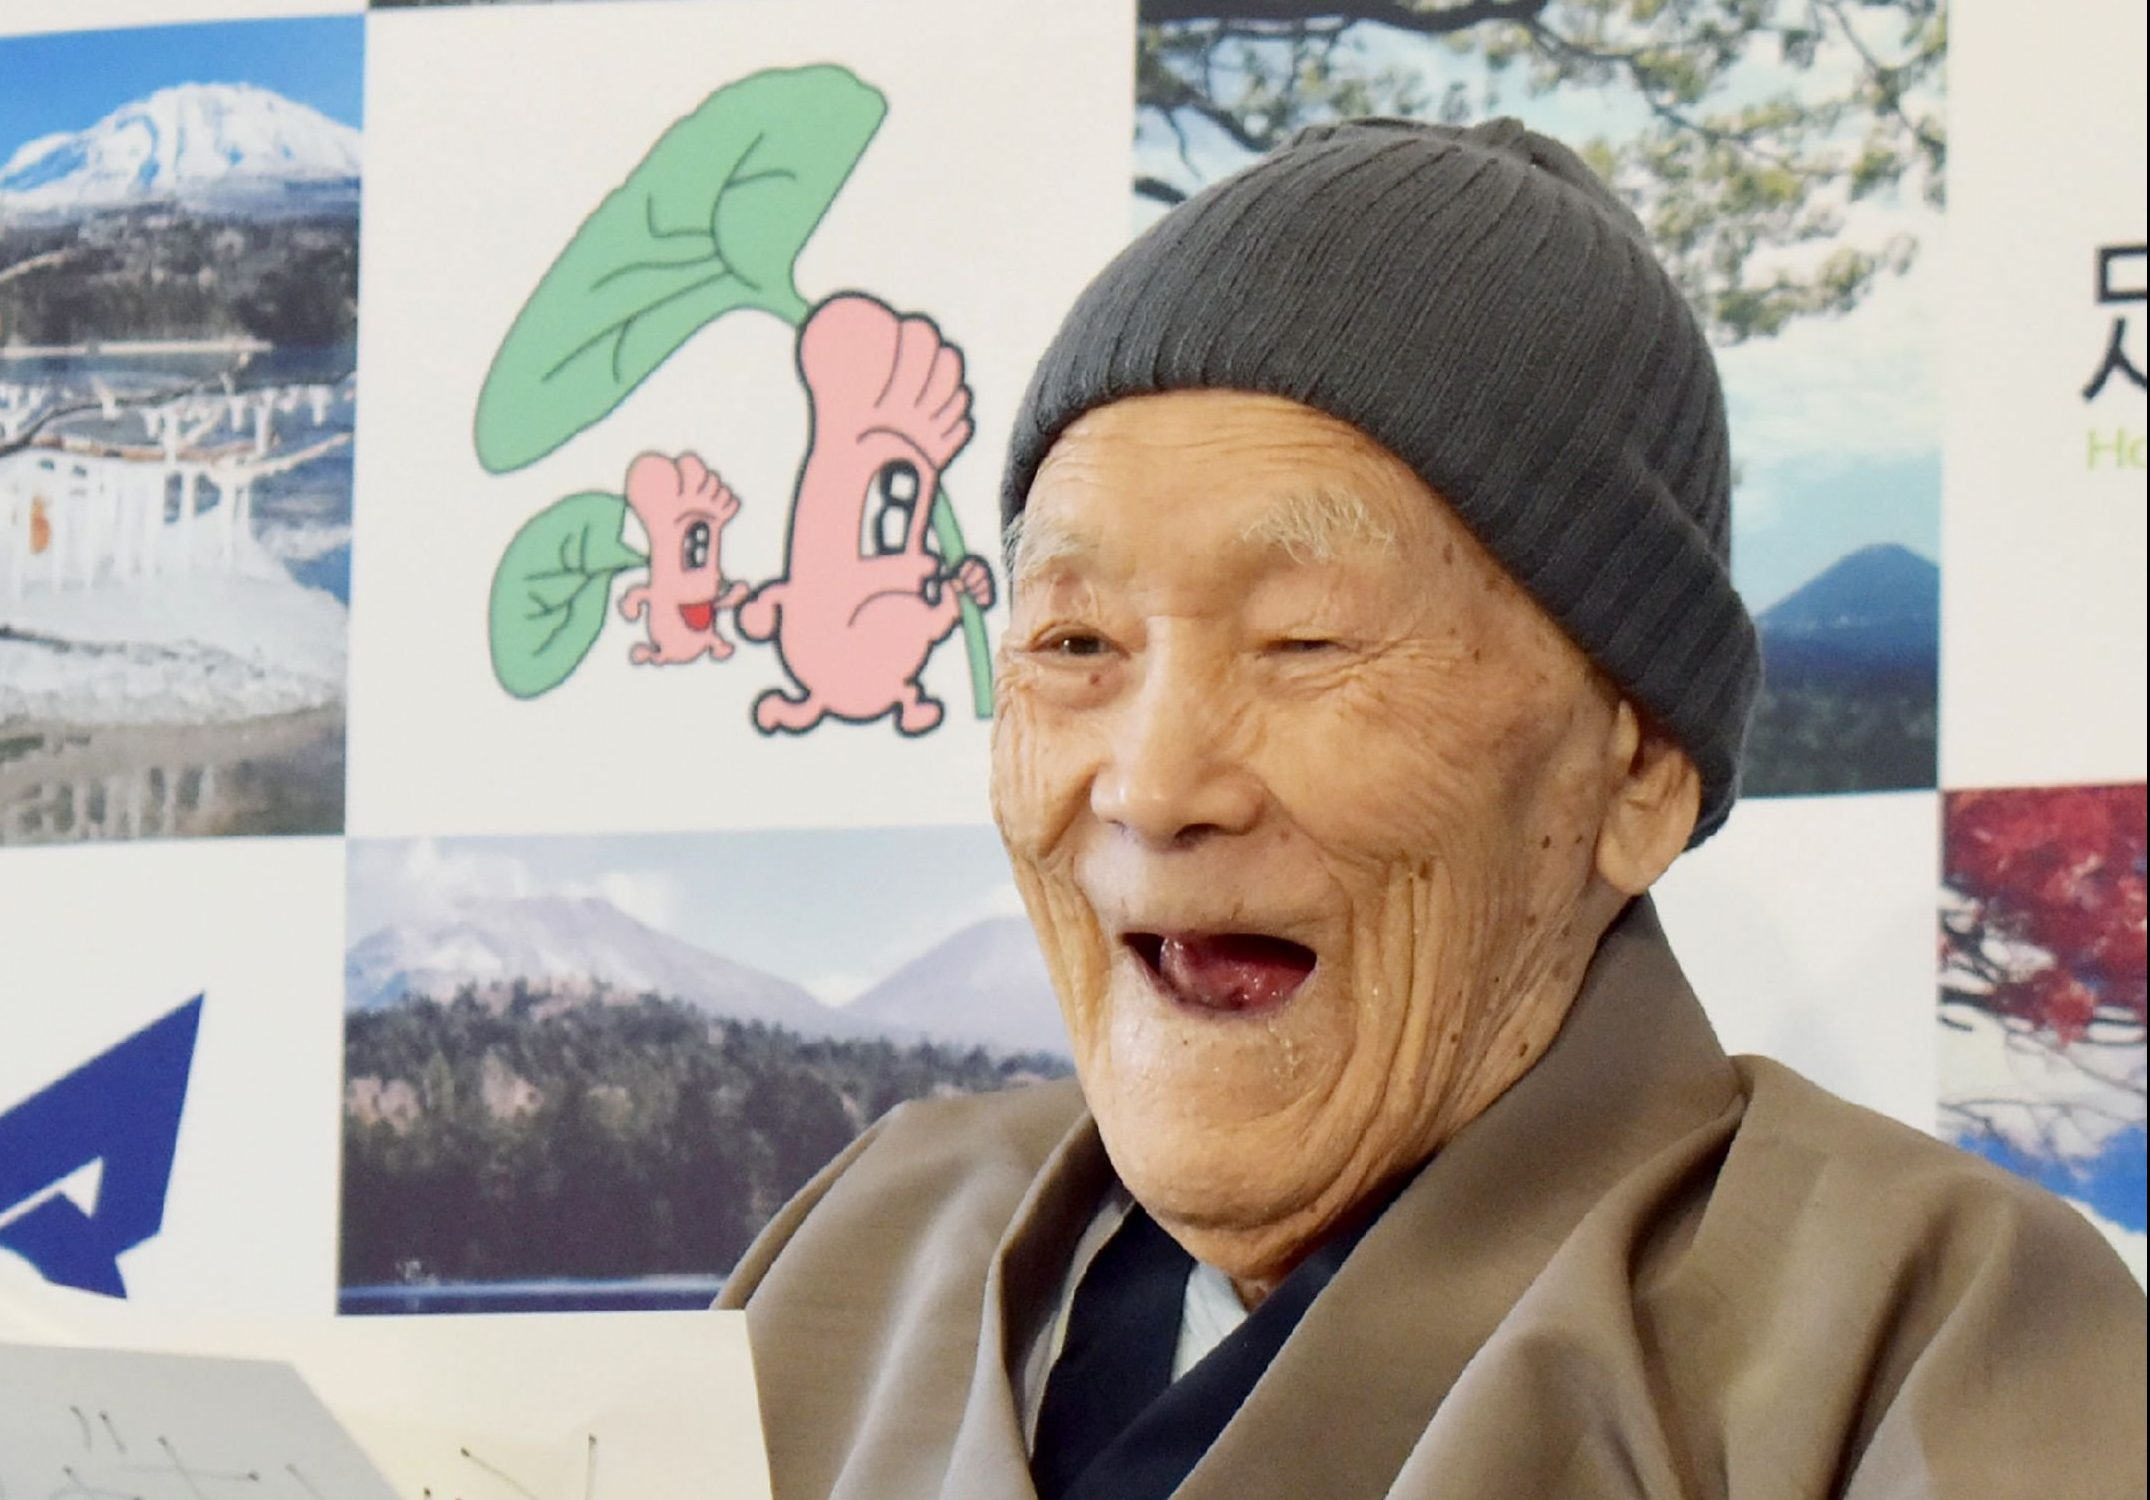 "(FILES) This file photo taken on April 10, 2018 shows Masazo Nonaka of Japan, then aged 112, smiling after being awarded the Guinness World Records' oldest male person living title in Ashoro, Hokkaido prefecture. - ""World's oldest man"" Masazo Nonaka, who was born just two years after the Wright brothers launched humanity's first powered flight, died on January 20, 2019 aged 113, Japanese media said. (Photo by JIJI PRESS / JIJI PRESS / AFP) / Japan OUTJIJI PRESS/AFP/Getty Images"